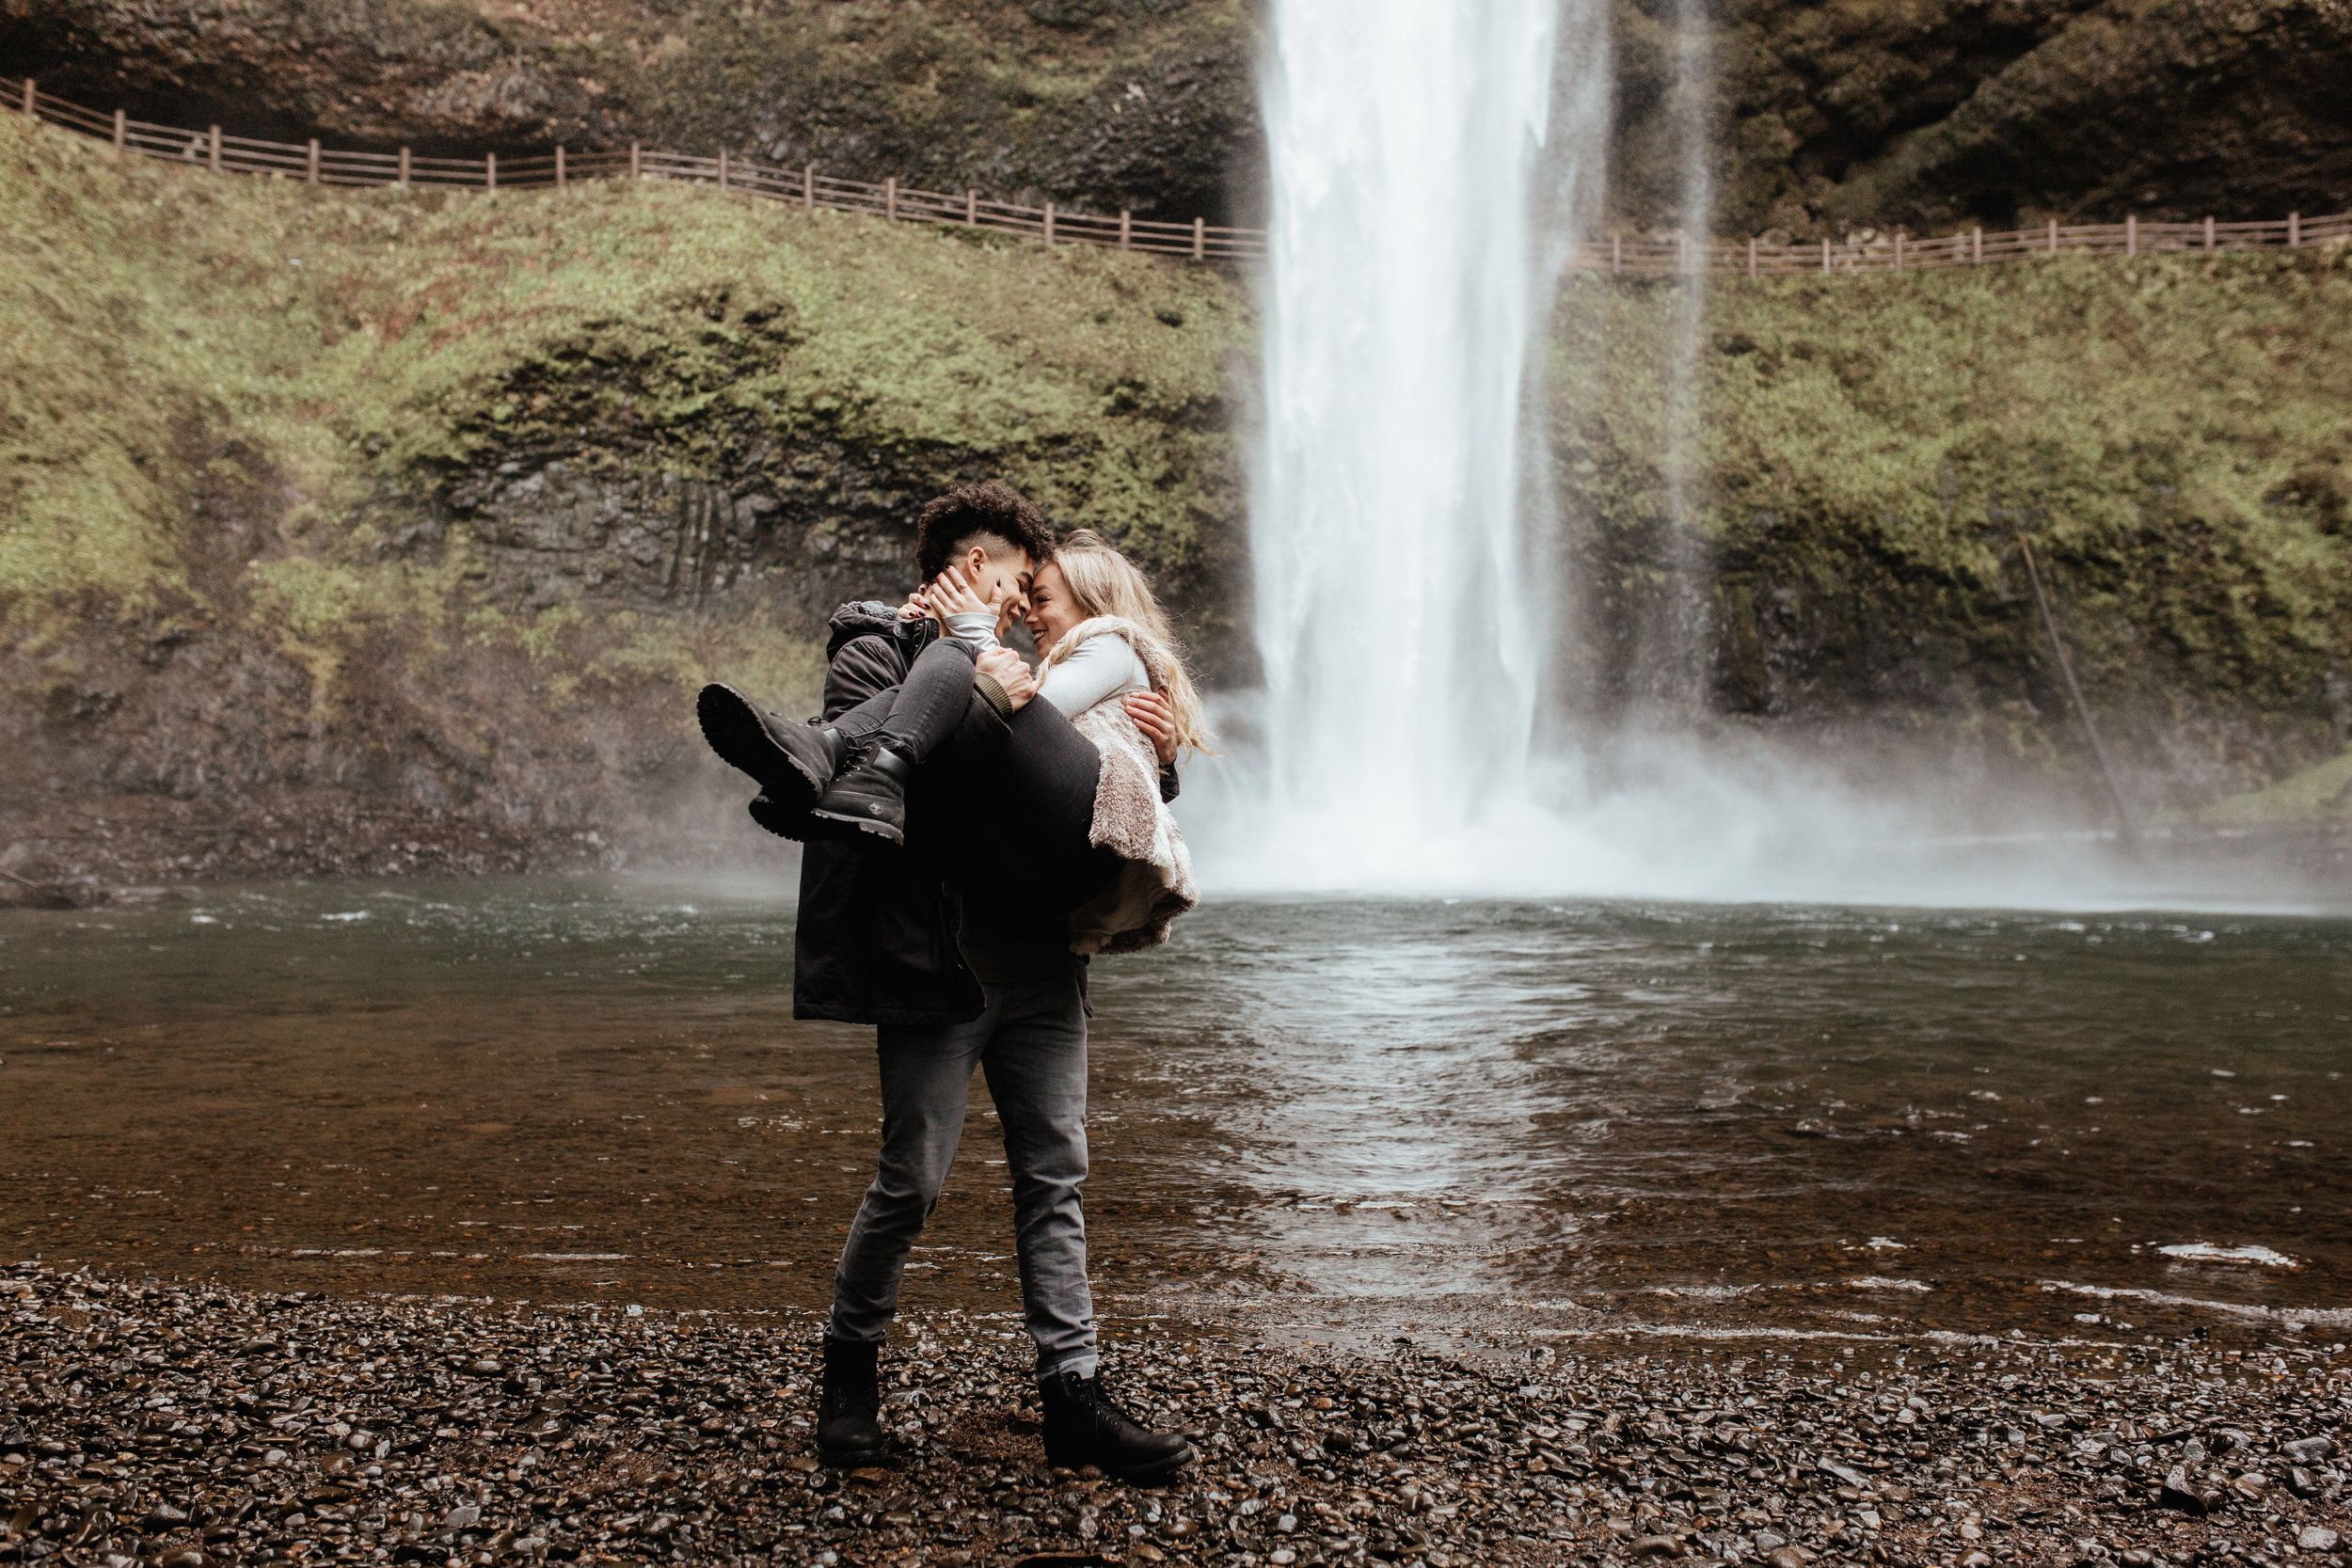 oregon+washinton+wedding+photographer09.jpg